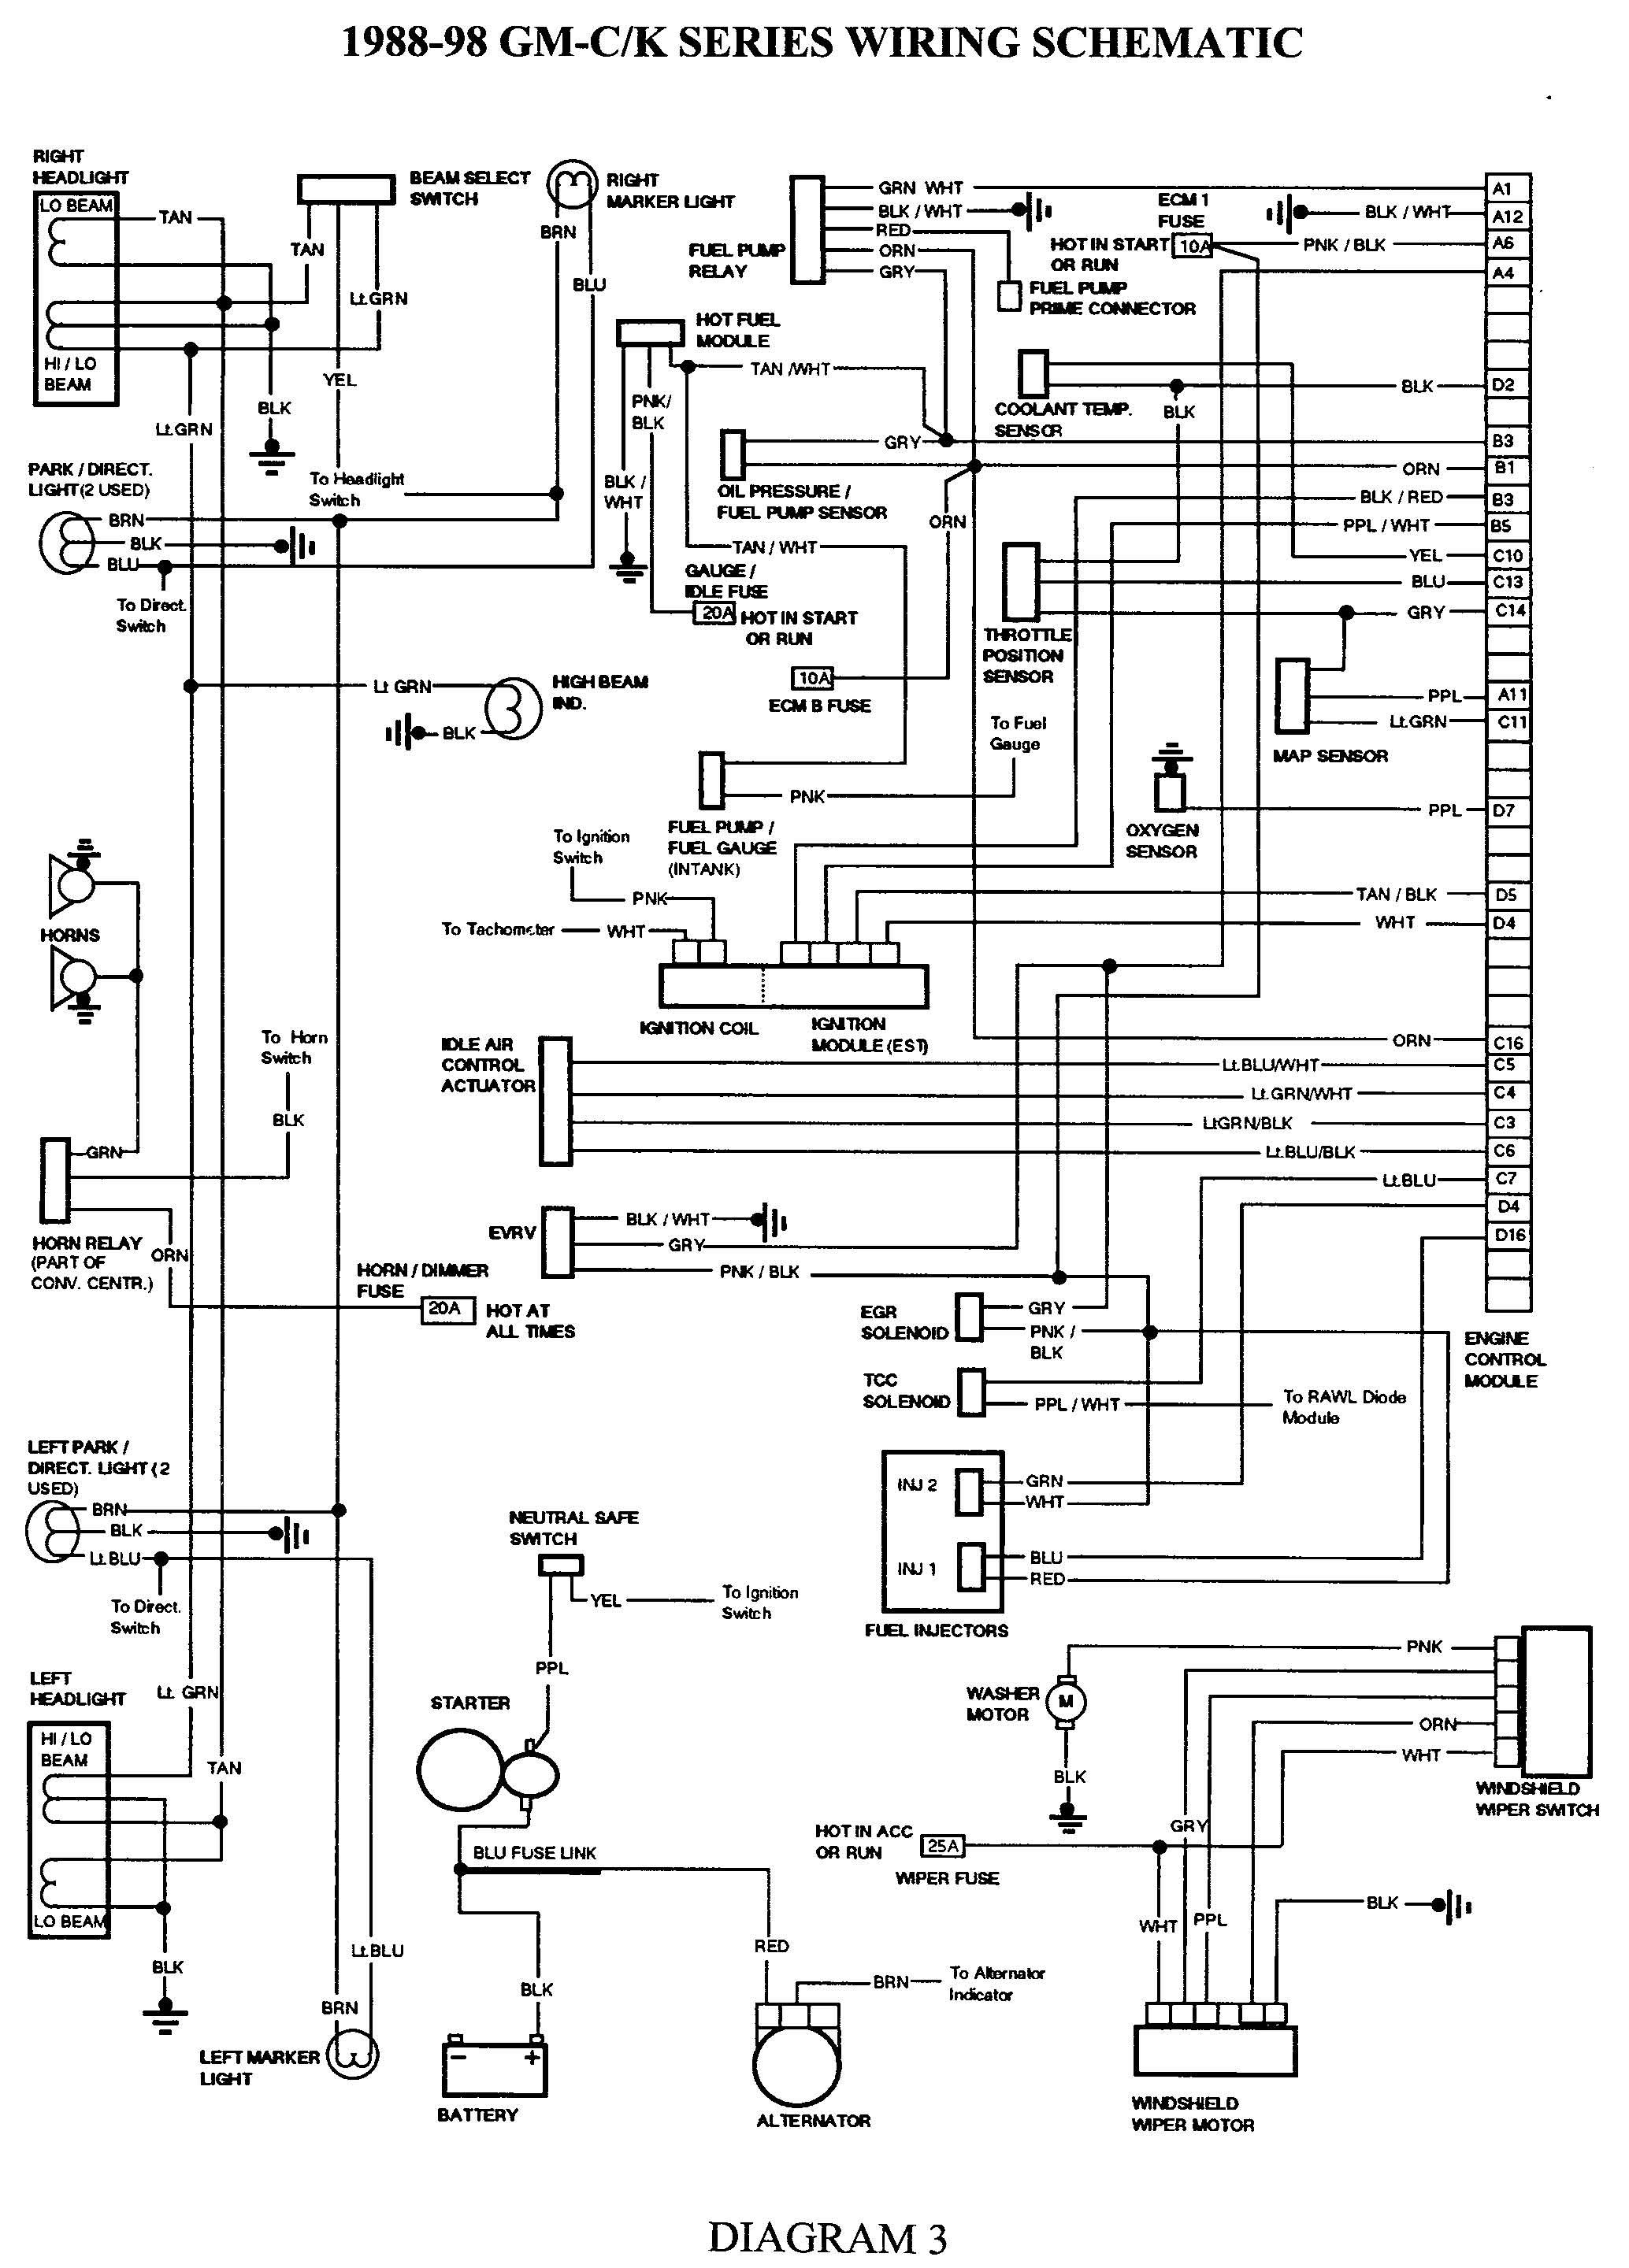 gmc truck wiring diagrams on gm wiring harness diagram 88 98 kc toyota pickup wiring harness [ 2068 x 2880 Pixel ]